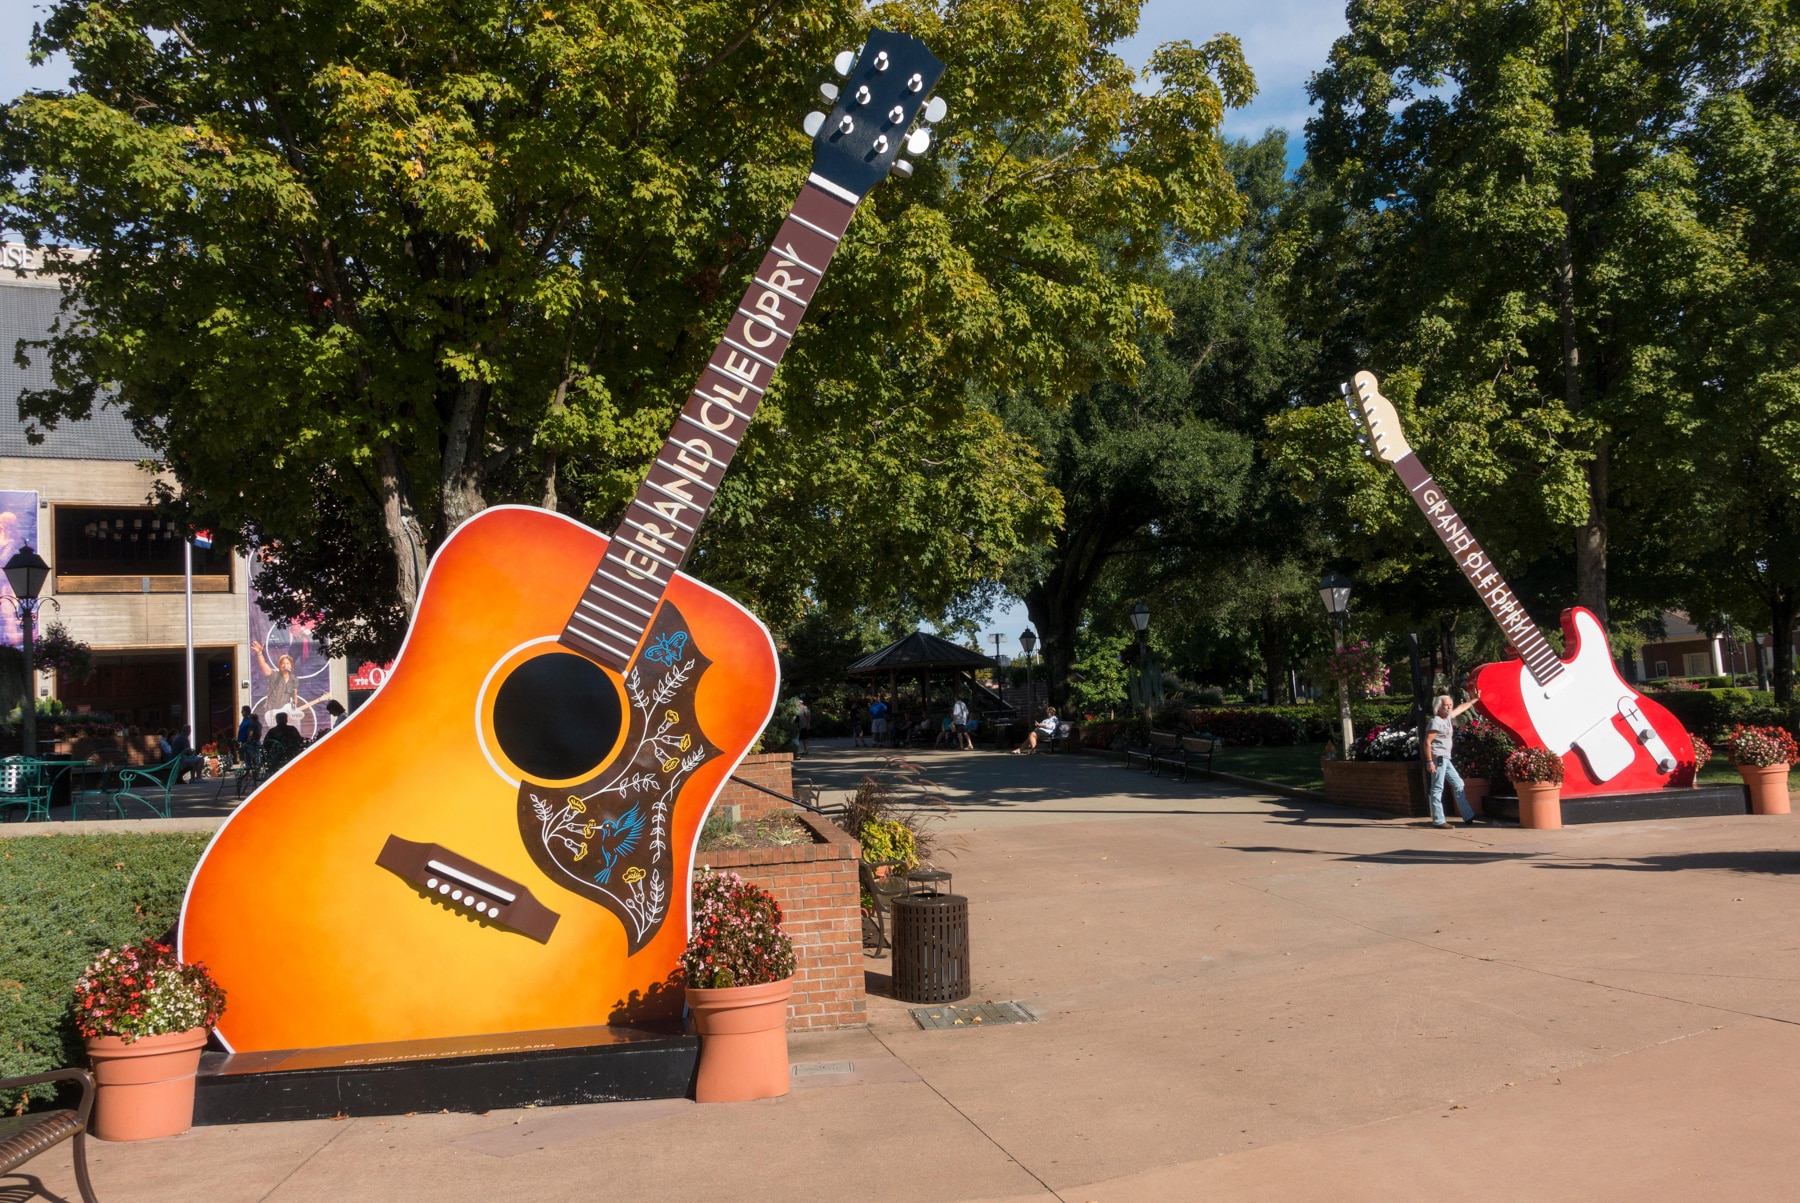 Two oversized guitar sculptures sticking out of ground (© Alamy)